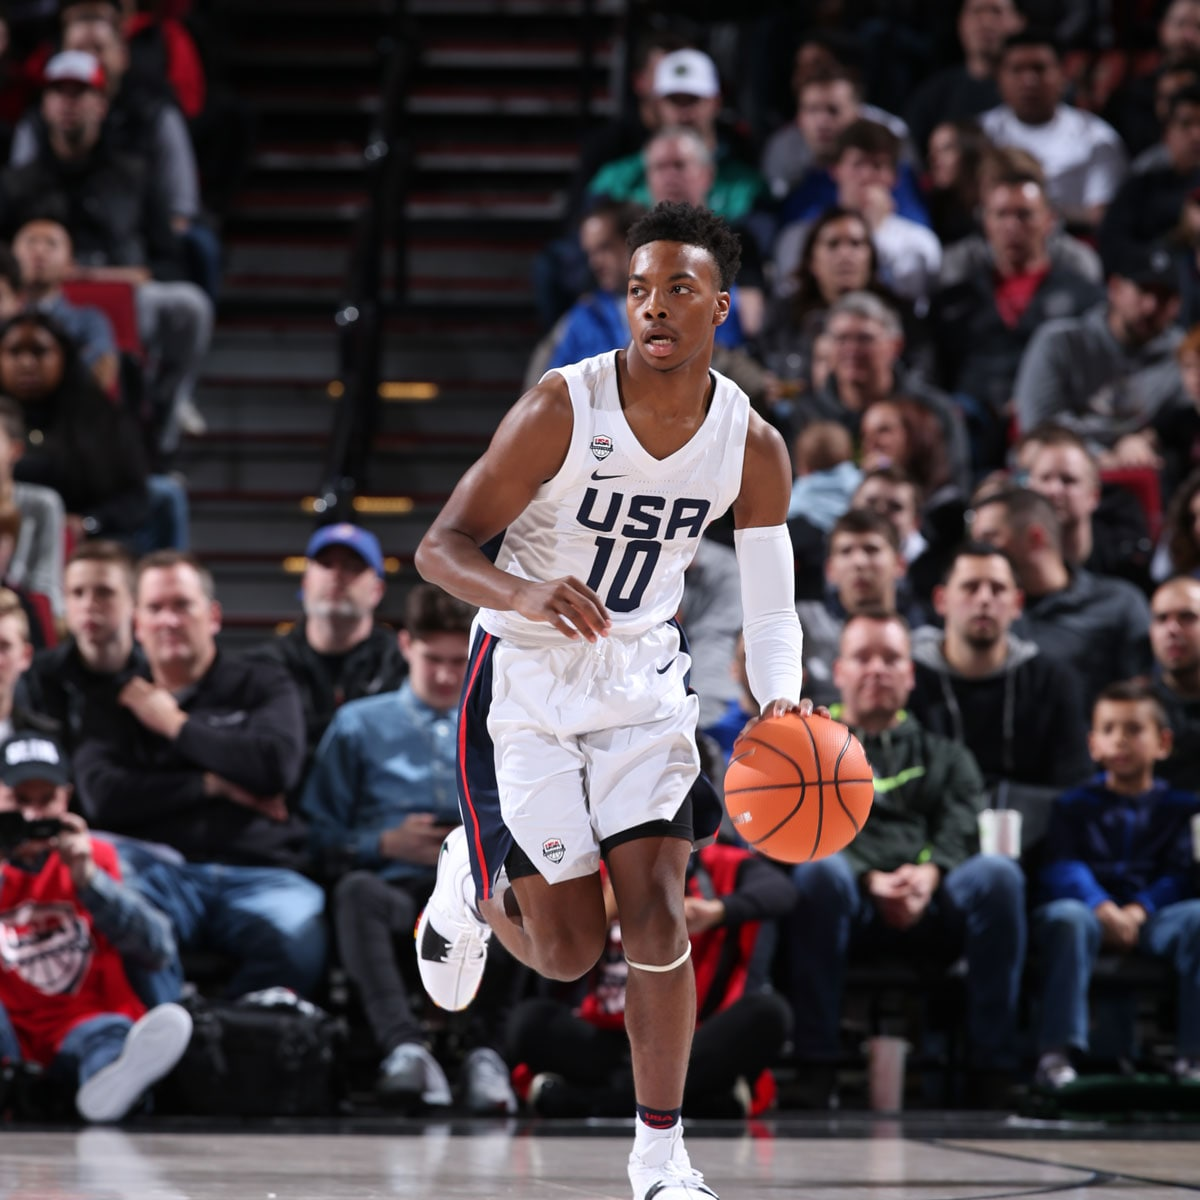 Darius Garland #10 of Team USA dribbles the ball against Team World during the Nike Hoop Summit on April 13, 2018 at the MODA Center Arena in Portland, Oregon.